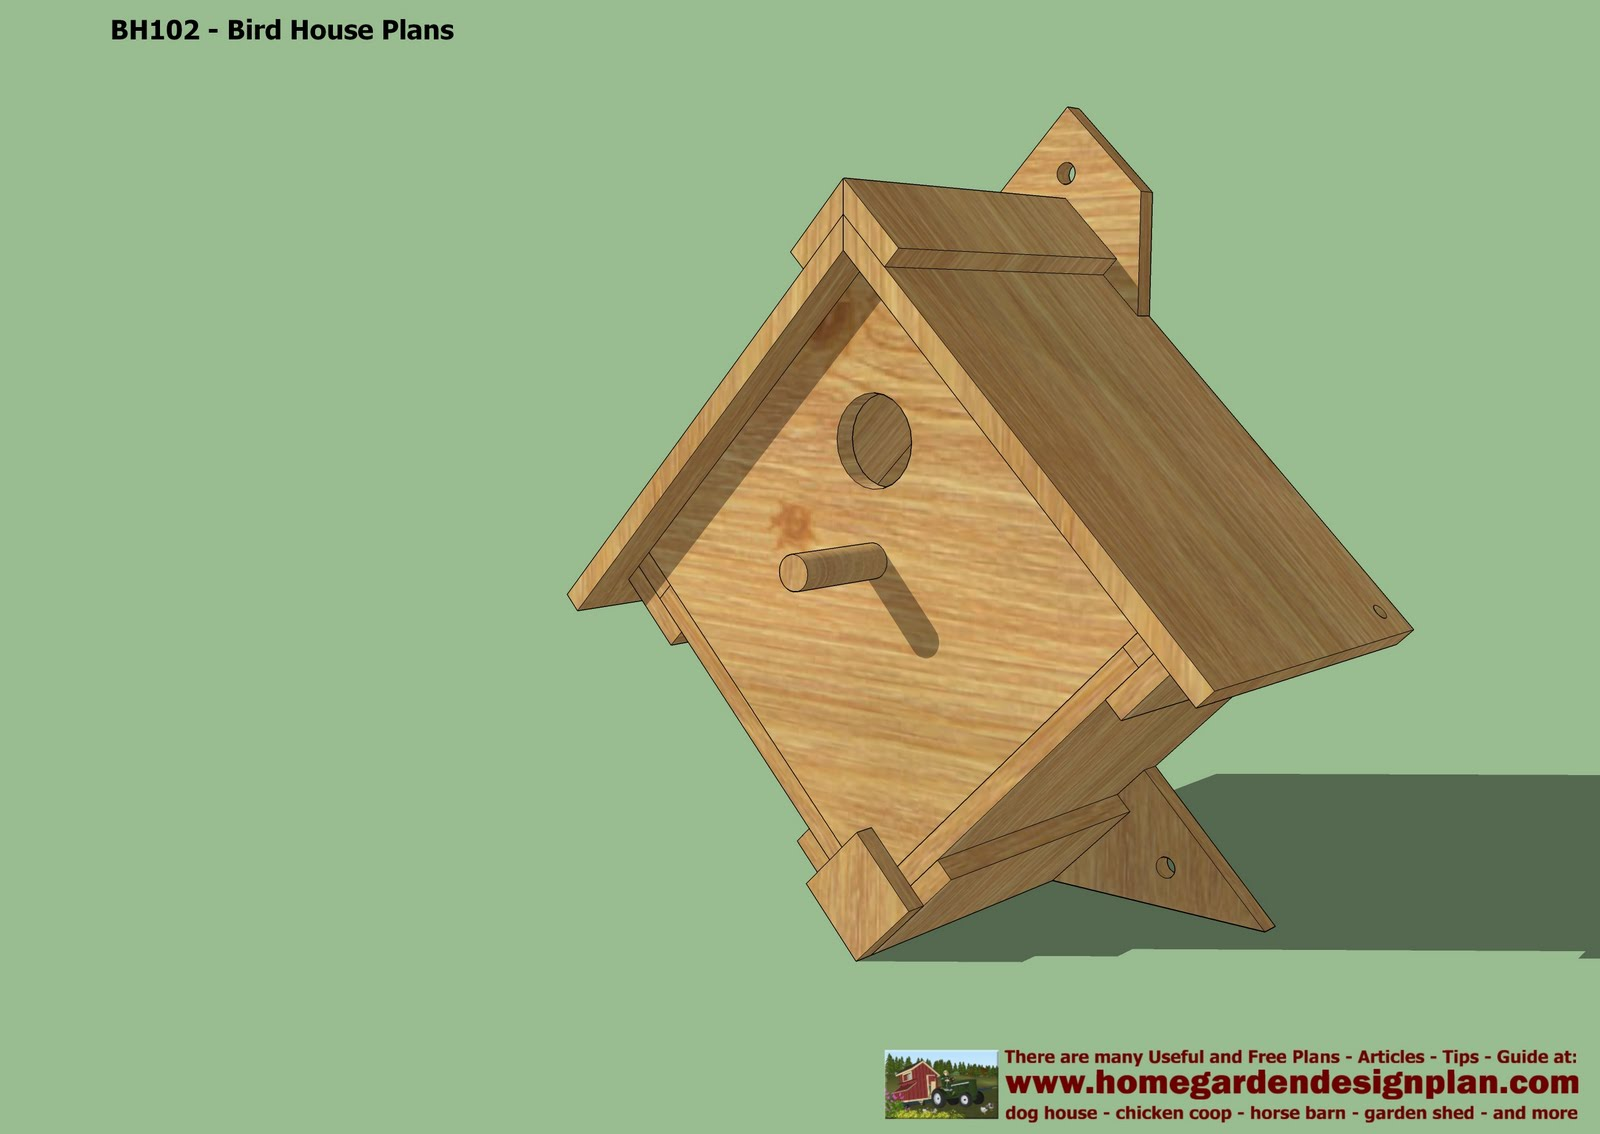 ... Feeder Plans besides DIY Wooden Box Plans. on wooden birdhouse plans